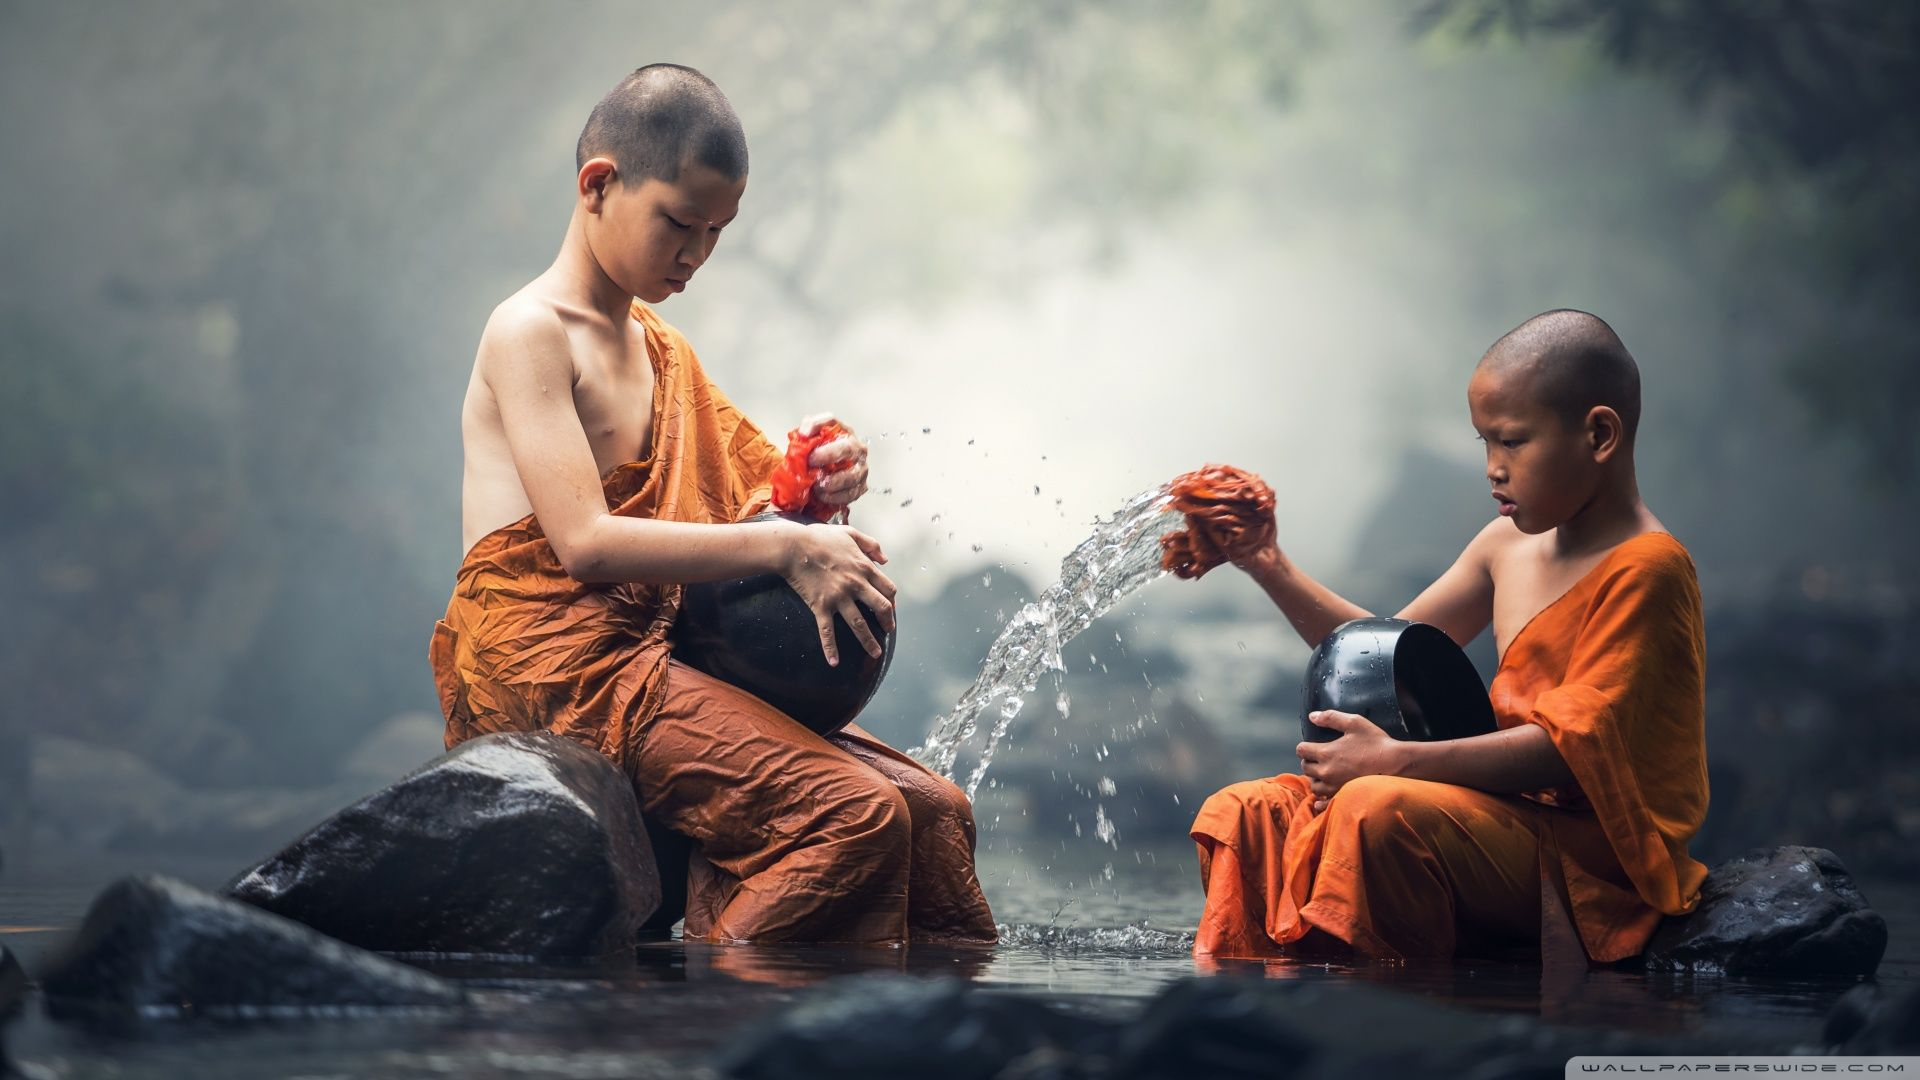 Lord buddha images for mobile 2